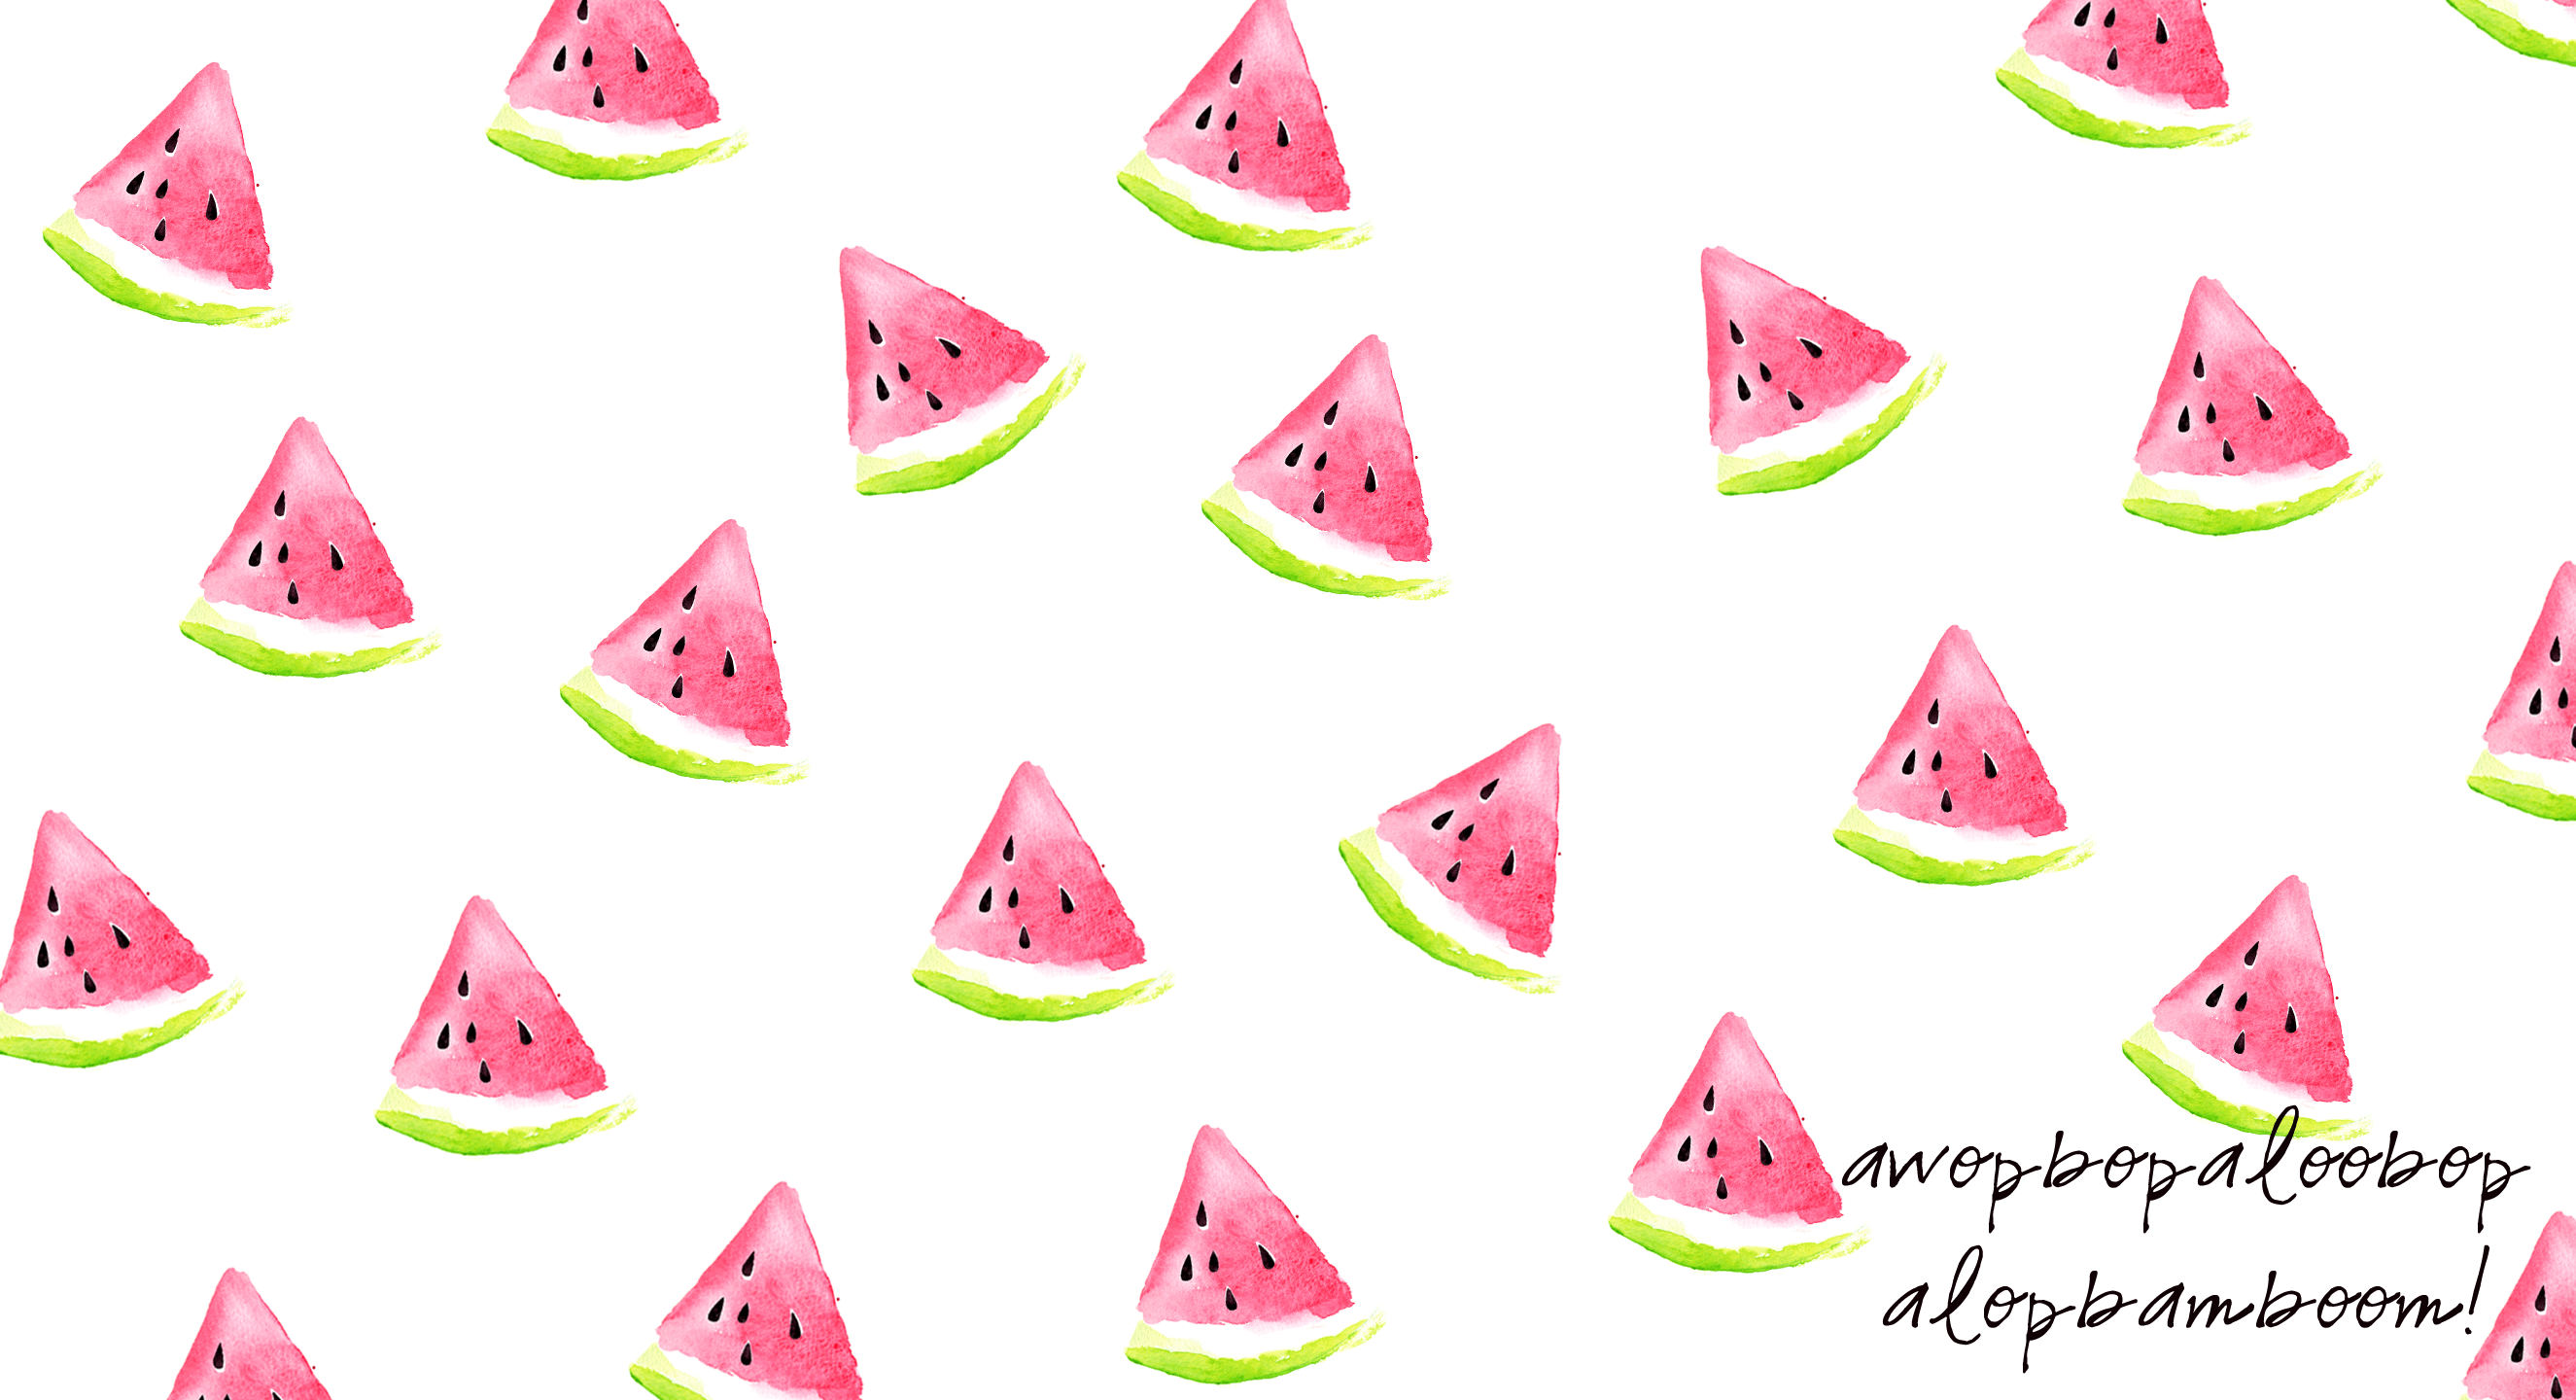 2650x1440 - Watermelon Wallpapers 9